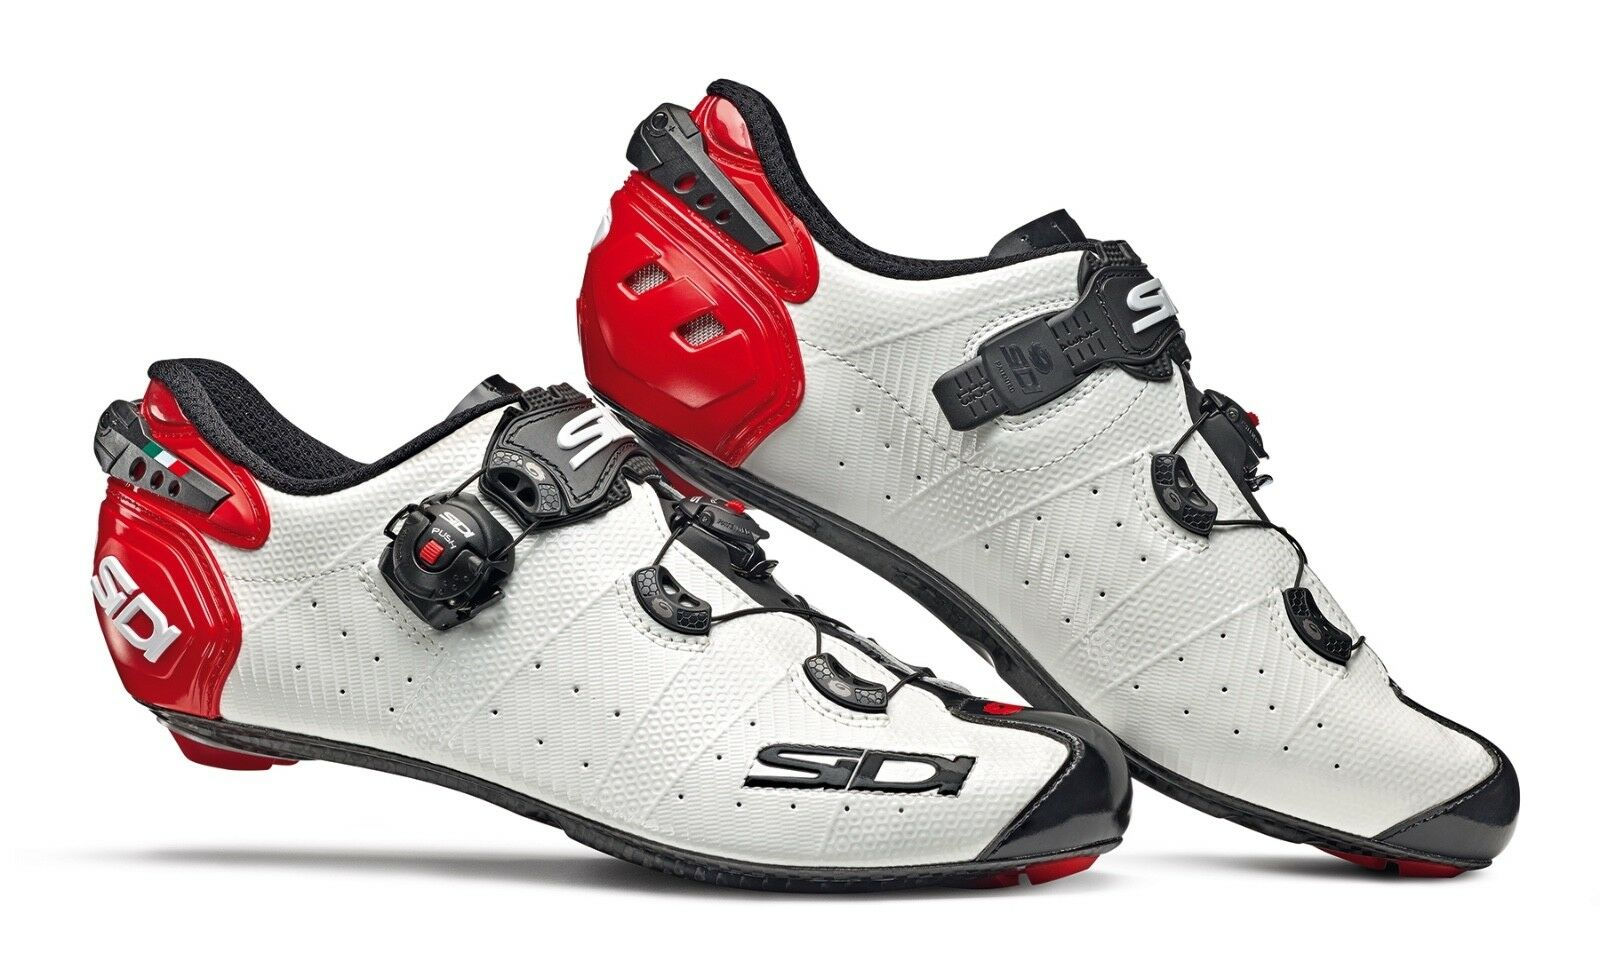 shoes SIDI WIRE  2 CARBON BIANCO black red Size 43.5  novelty items